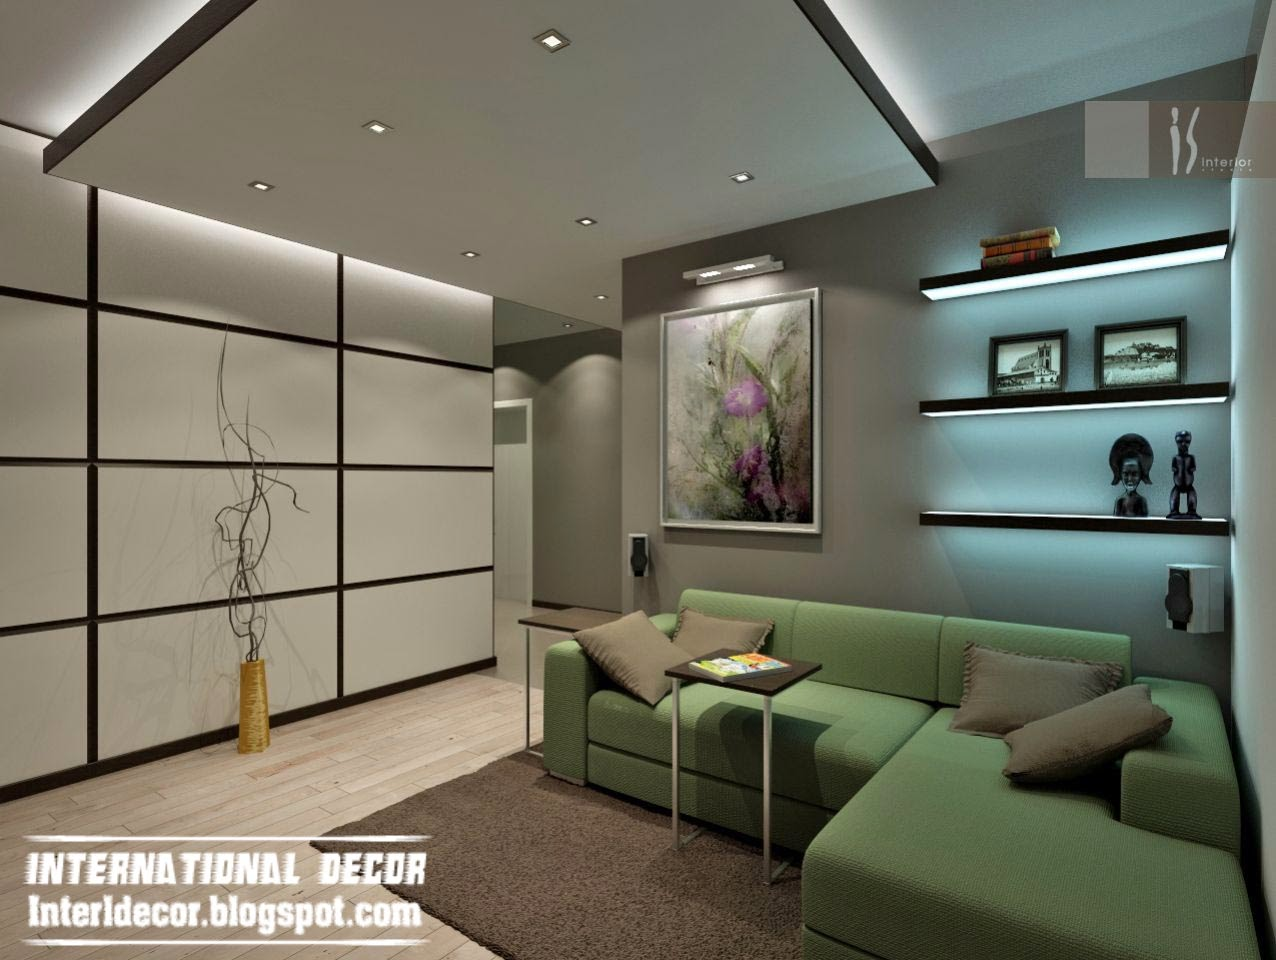 Top 10 Suspended ceiling tiles, lighting pop designs for living